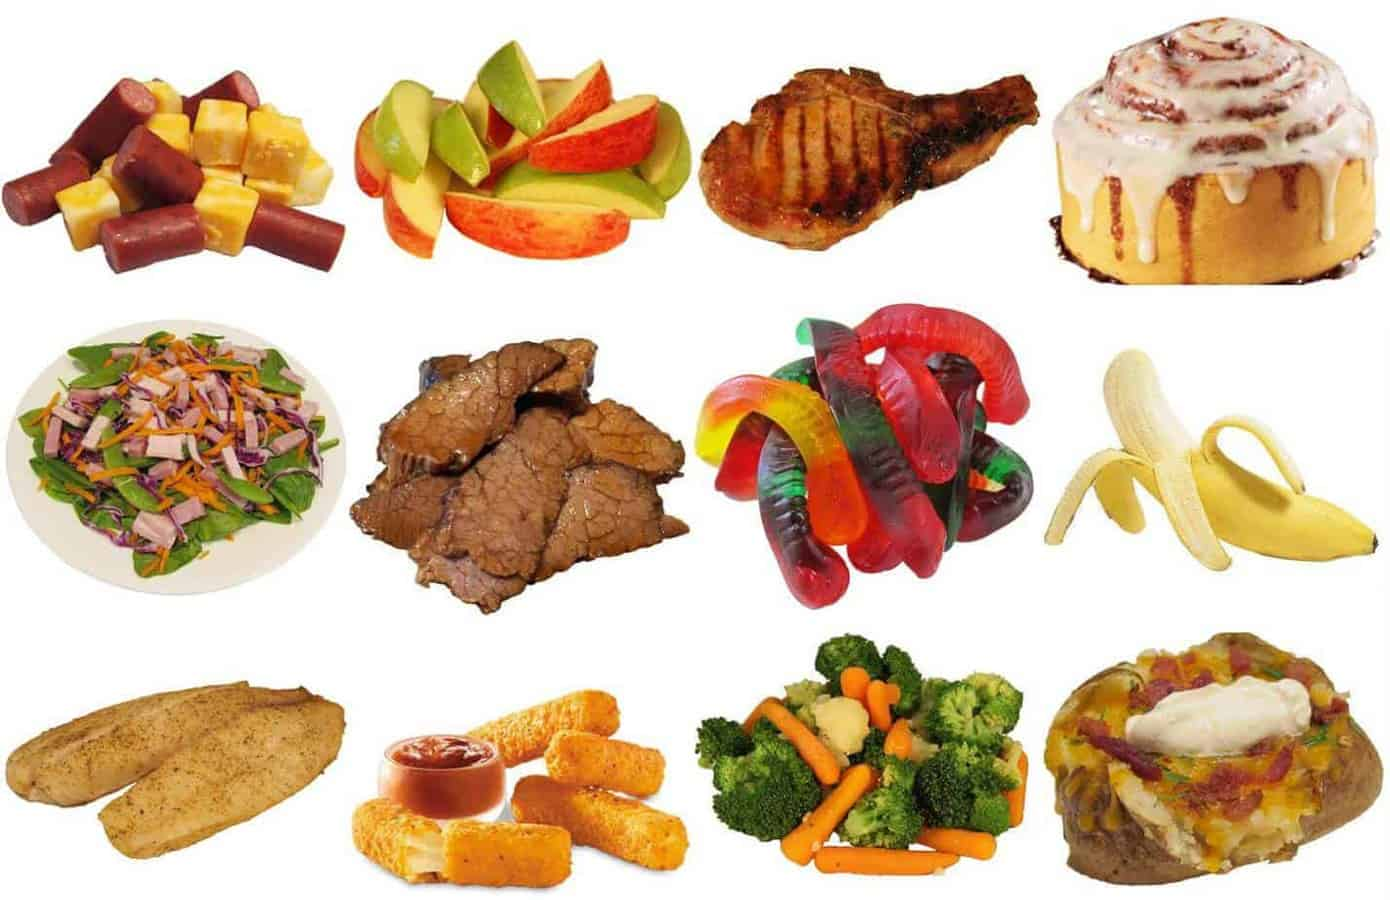 Spending more on food is associated with a healthier diet and weight